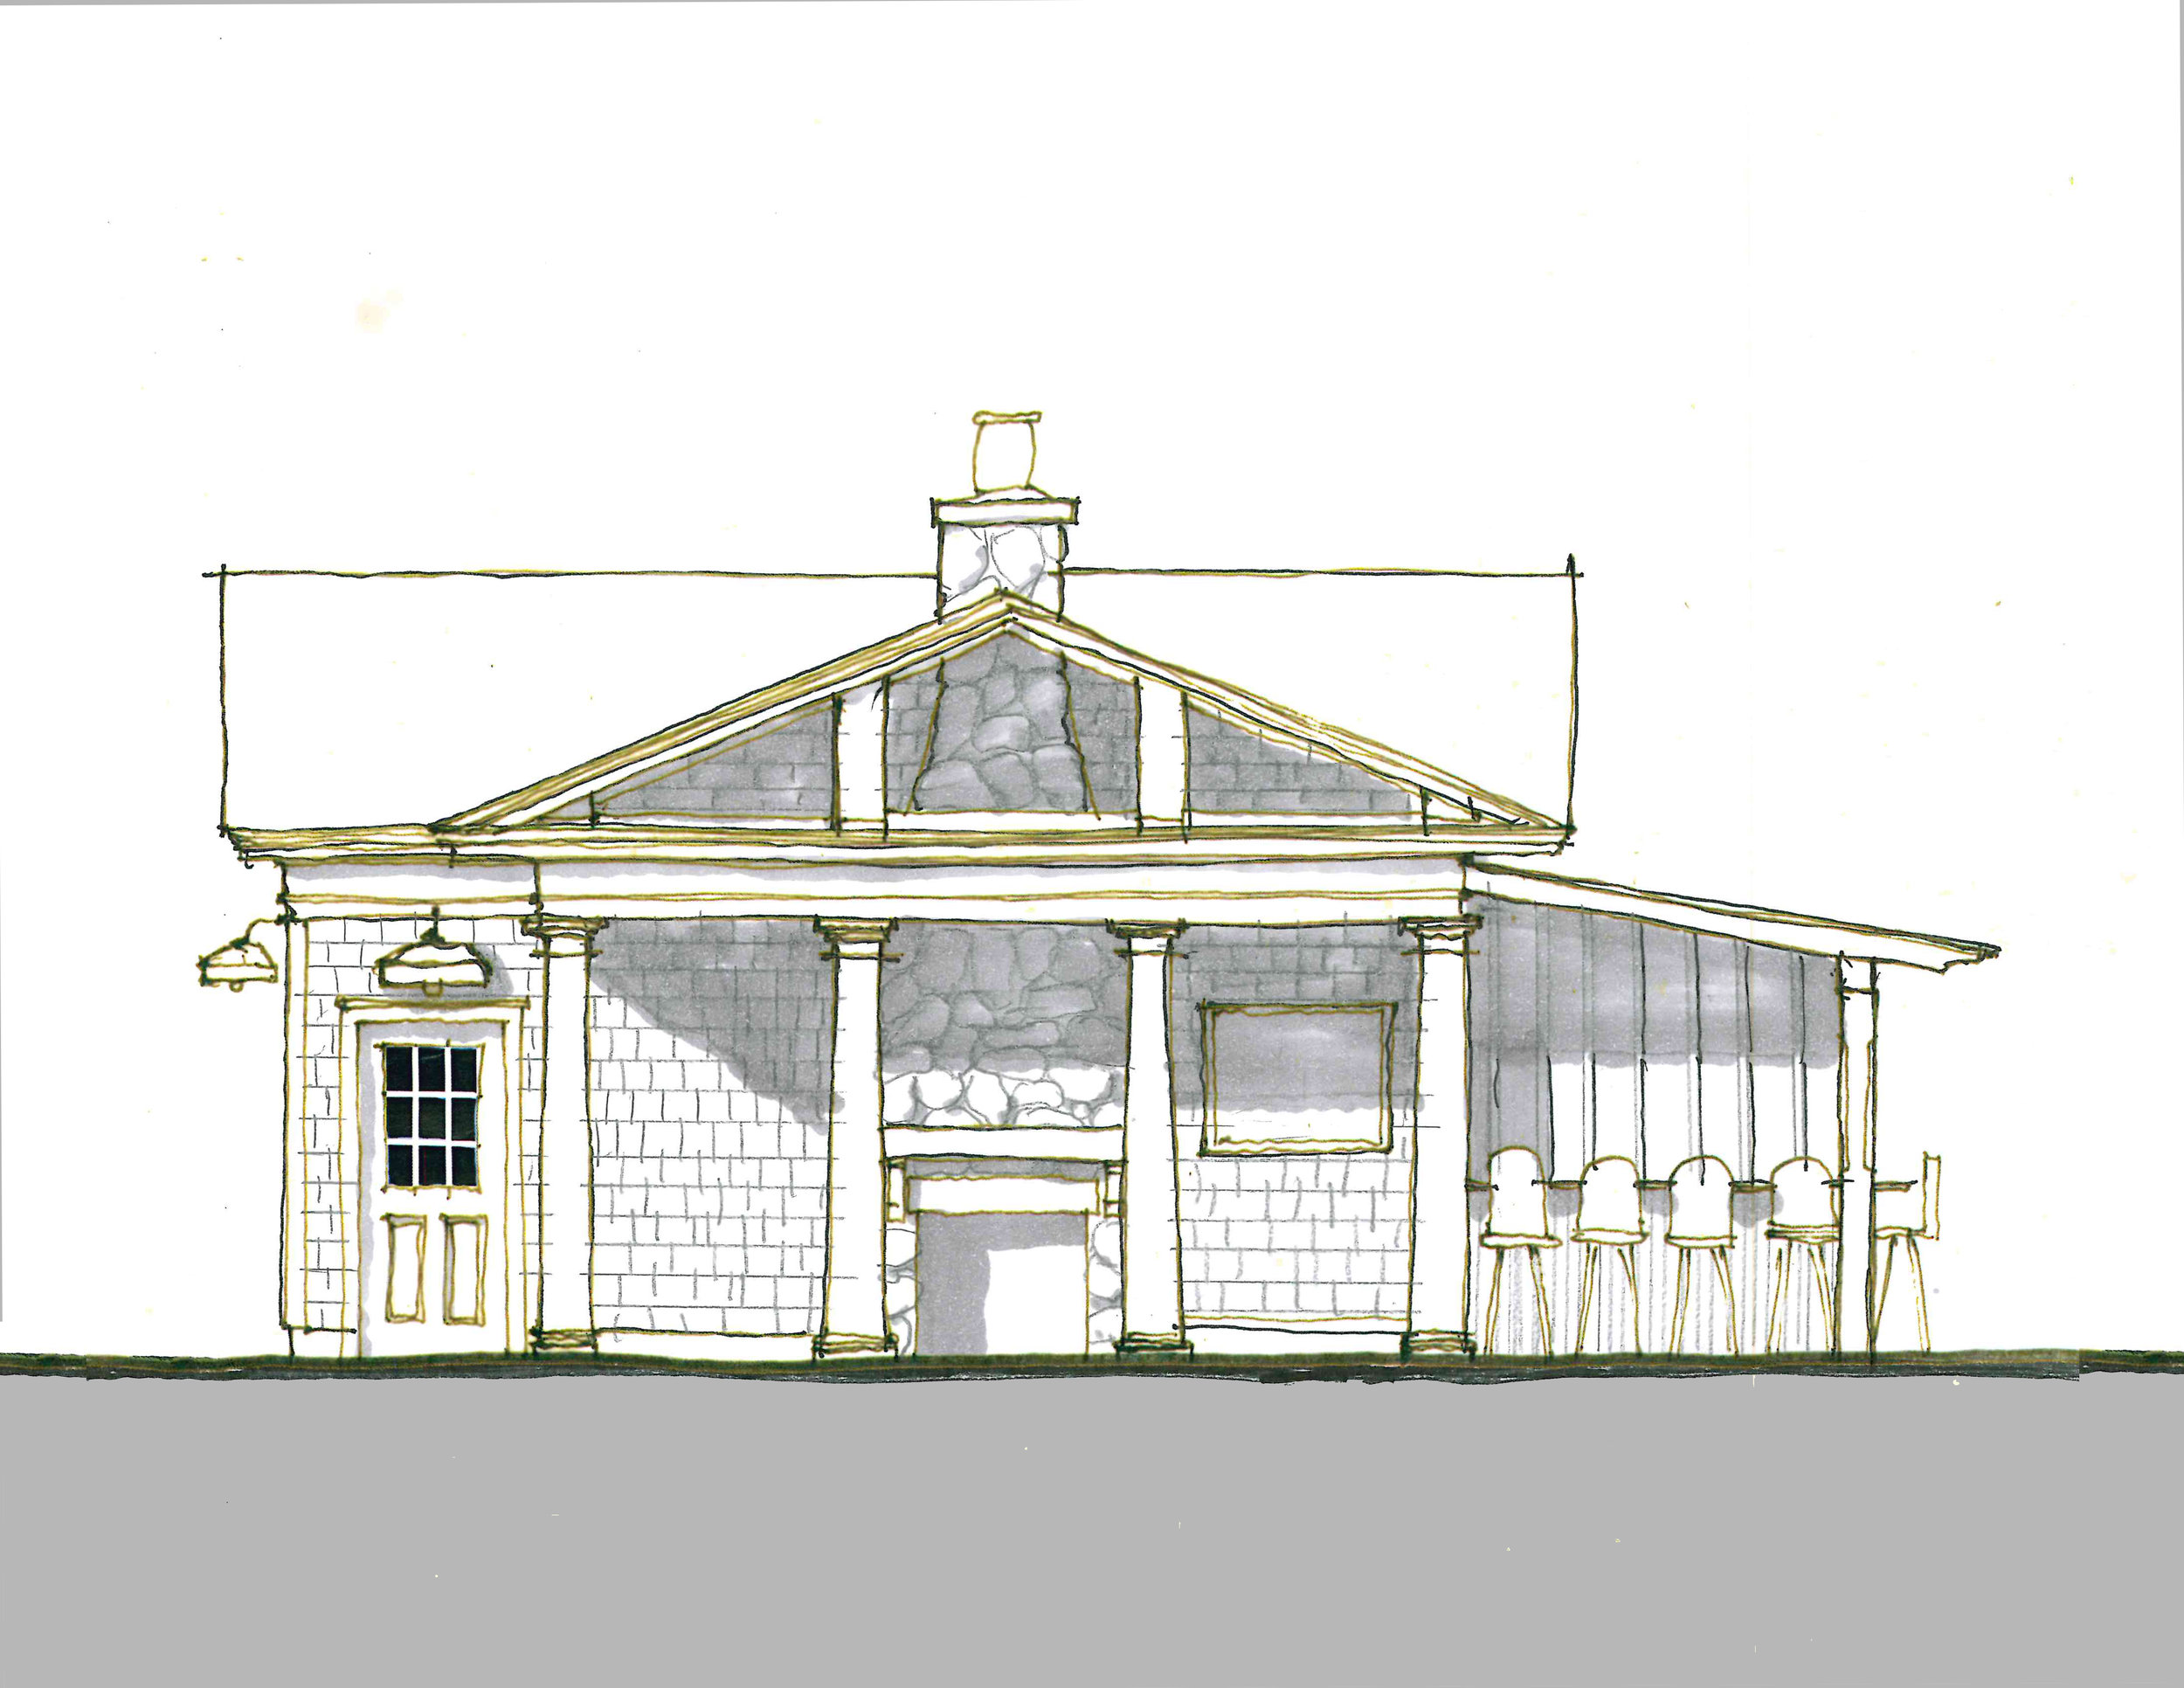 Schematic Design. Existing Garage is being developed and expanded to include the covered porch with fireplace and outdoor kitchen.  This accessory building will also house pool equipment storage while continuing to serve as a garage.